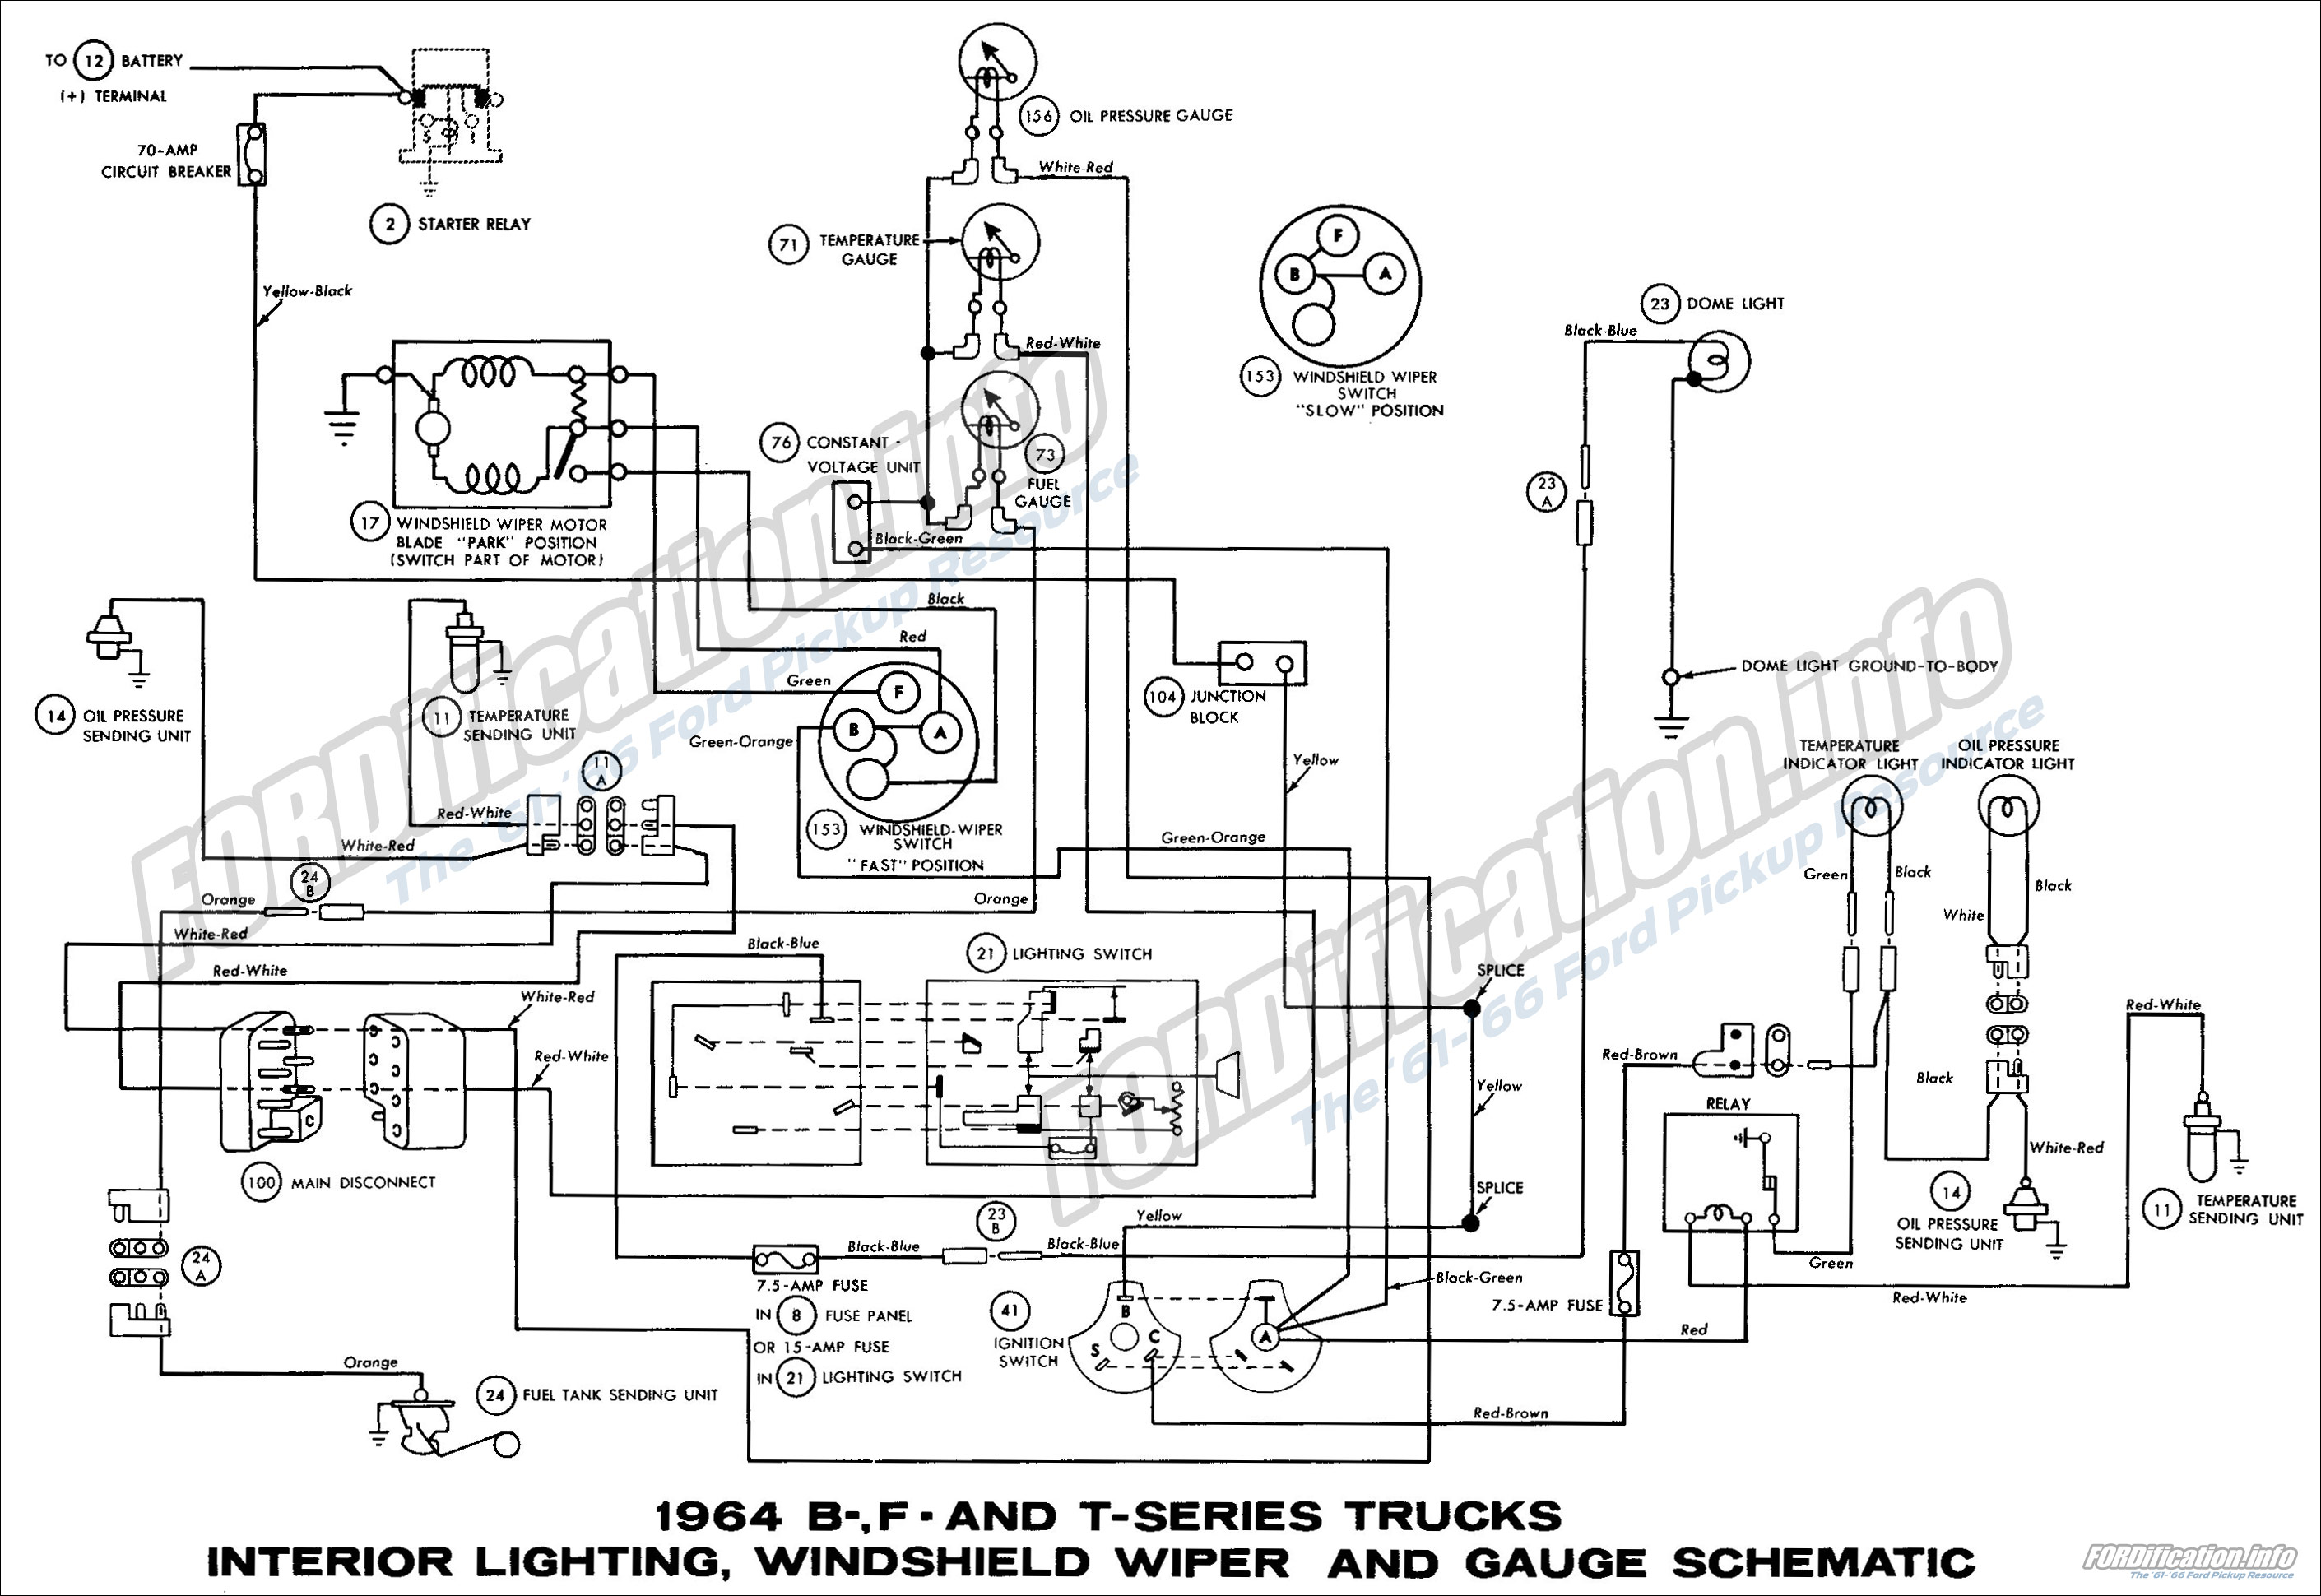 1964_10 1964 ford truck wiring diagrams fordification info the '61 '66 Universal Wiper Motor Wiring Diagram at bayanpartner.co